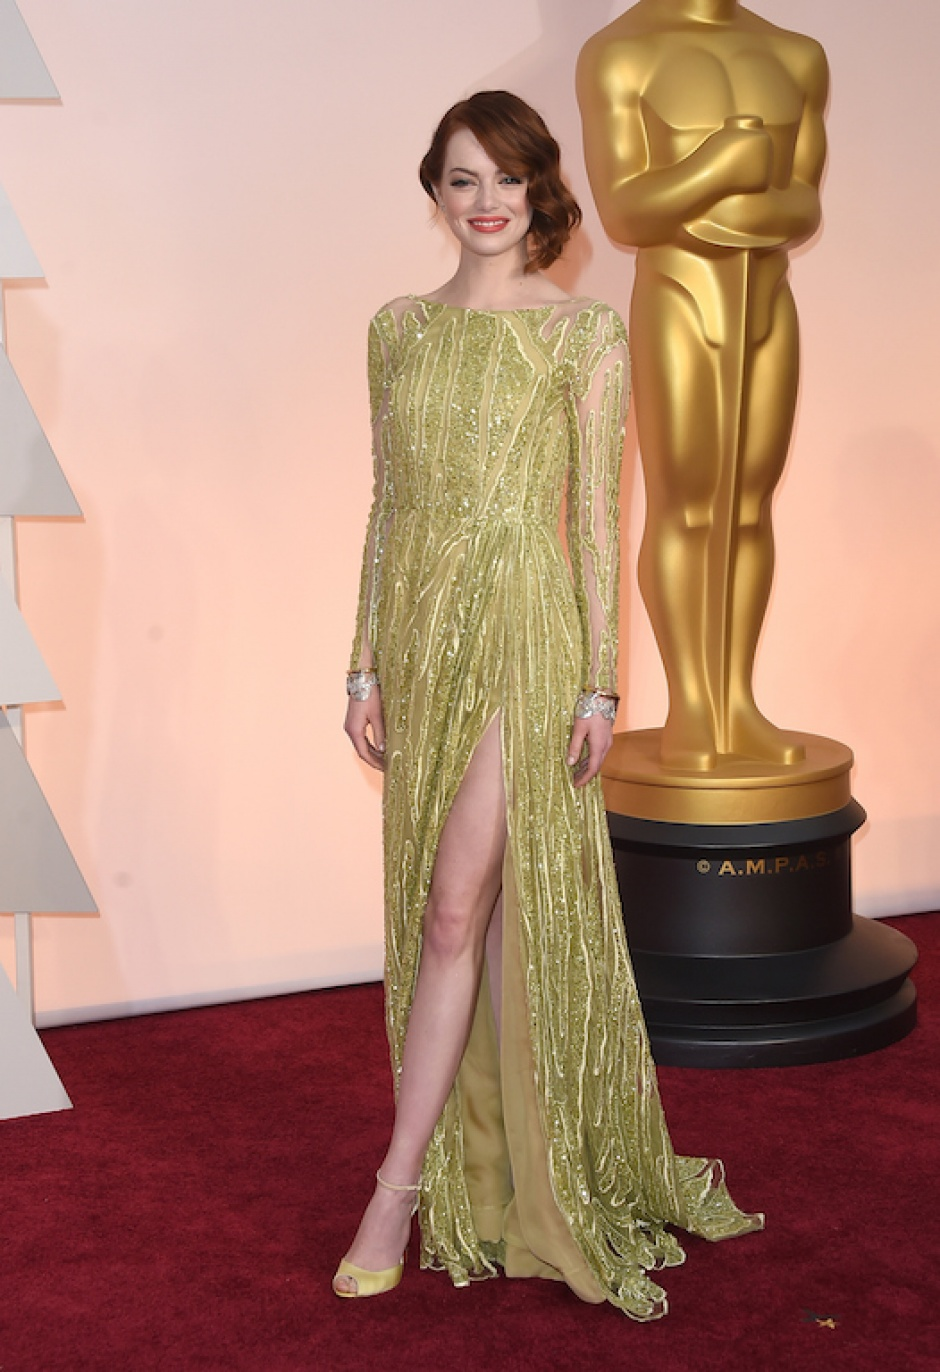 Emma Stone wearing an Elie Saab Couture gown at the 2015 Oscars